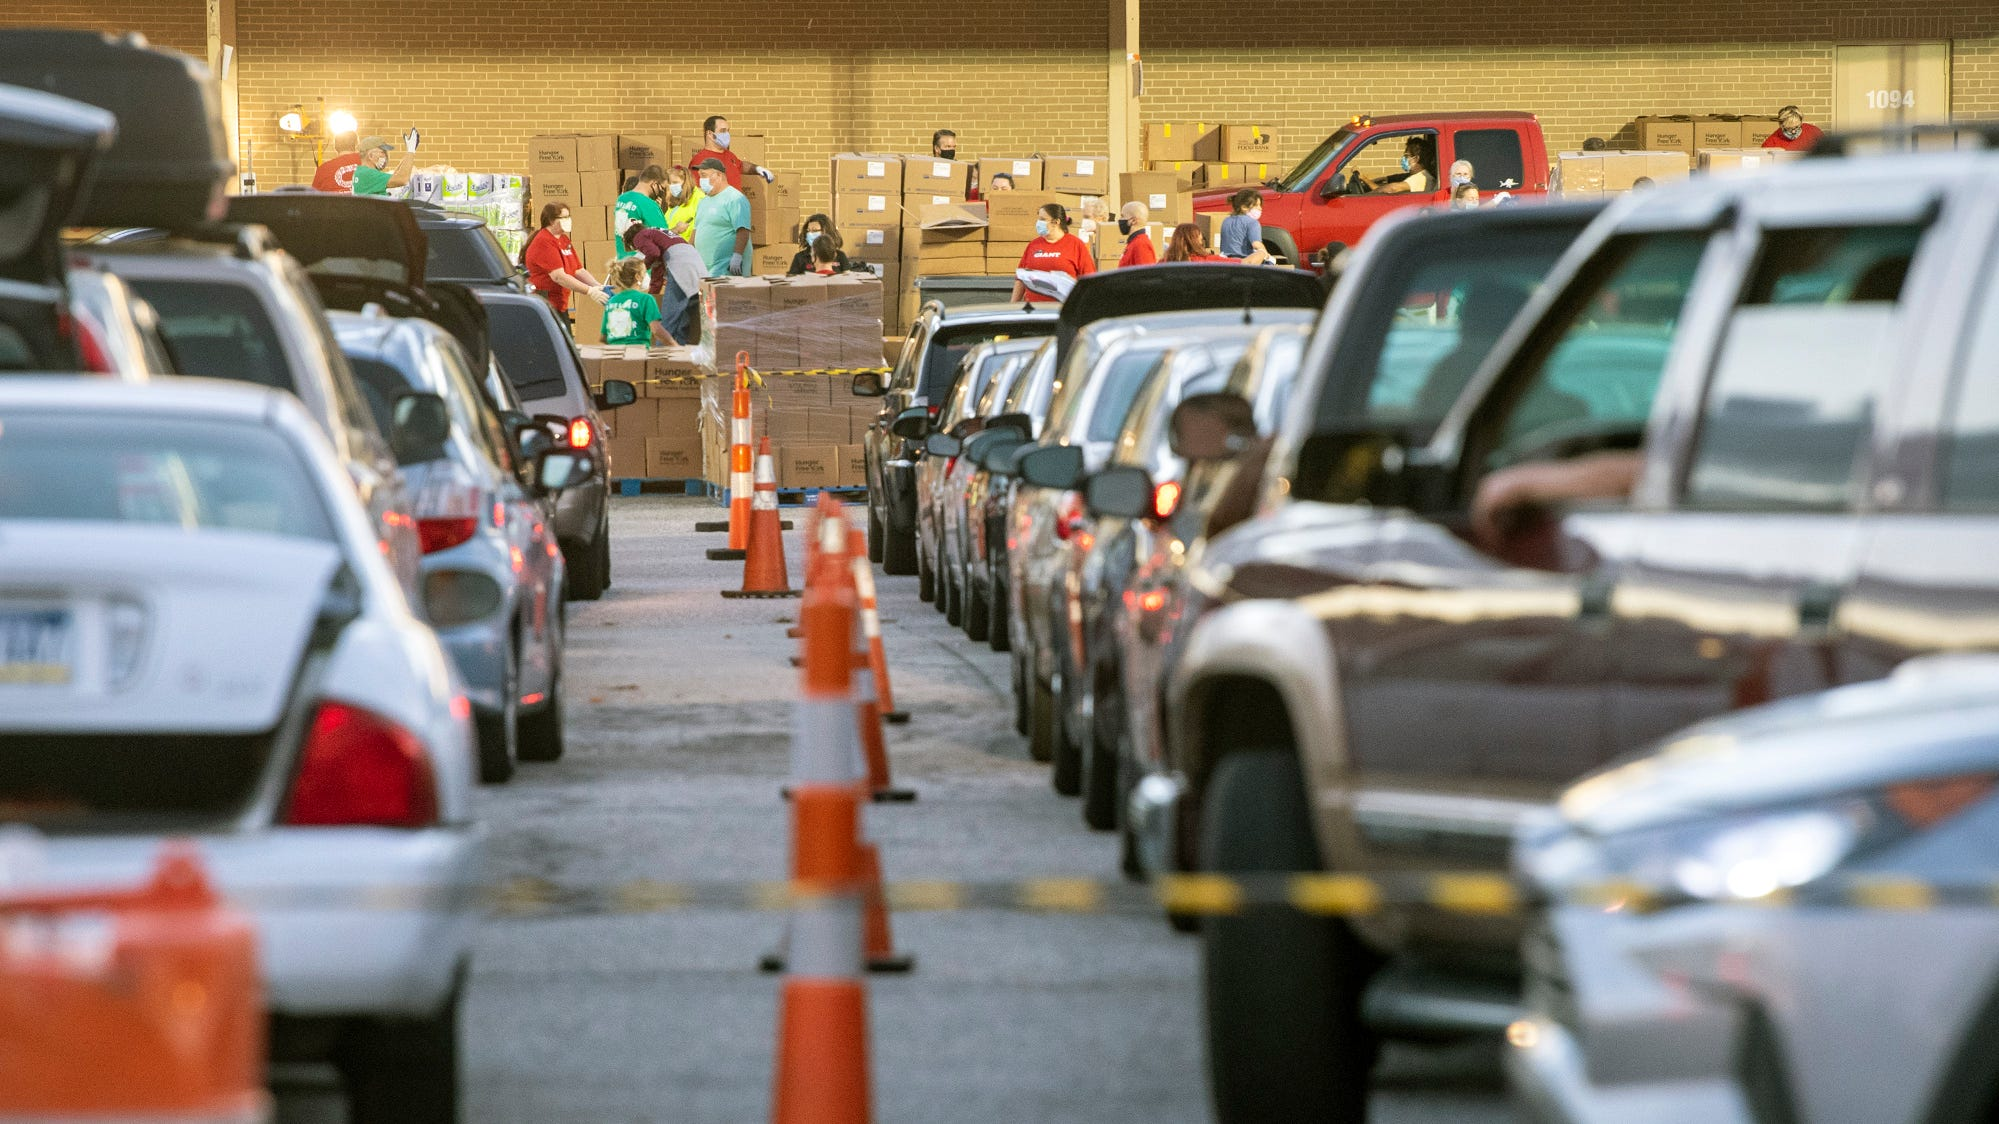 www.ldnews.com: Evictions, food lines, students living in a car: Pa. still struggling in COVID-19 economy